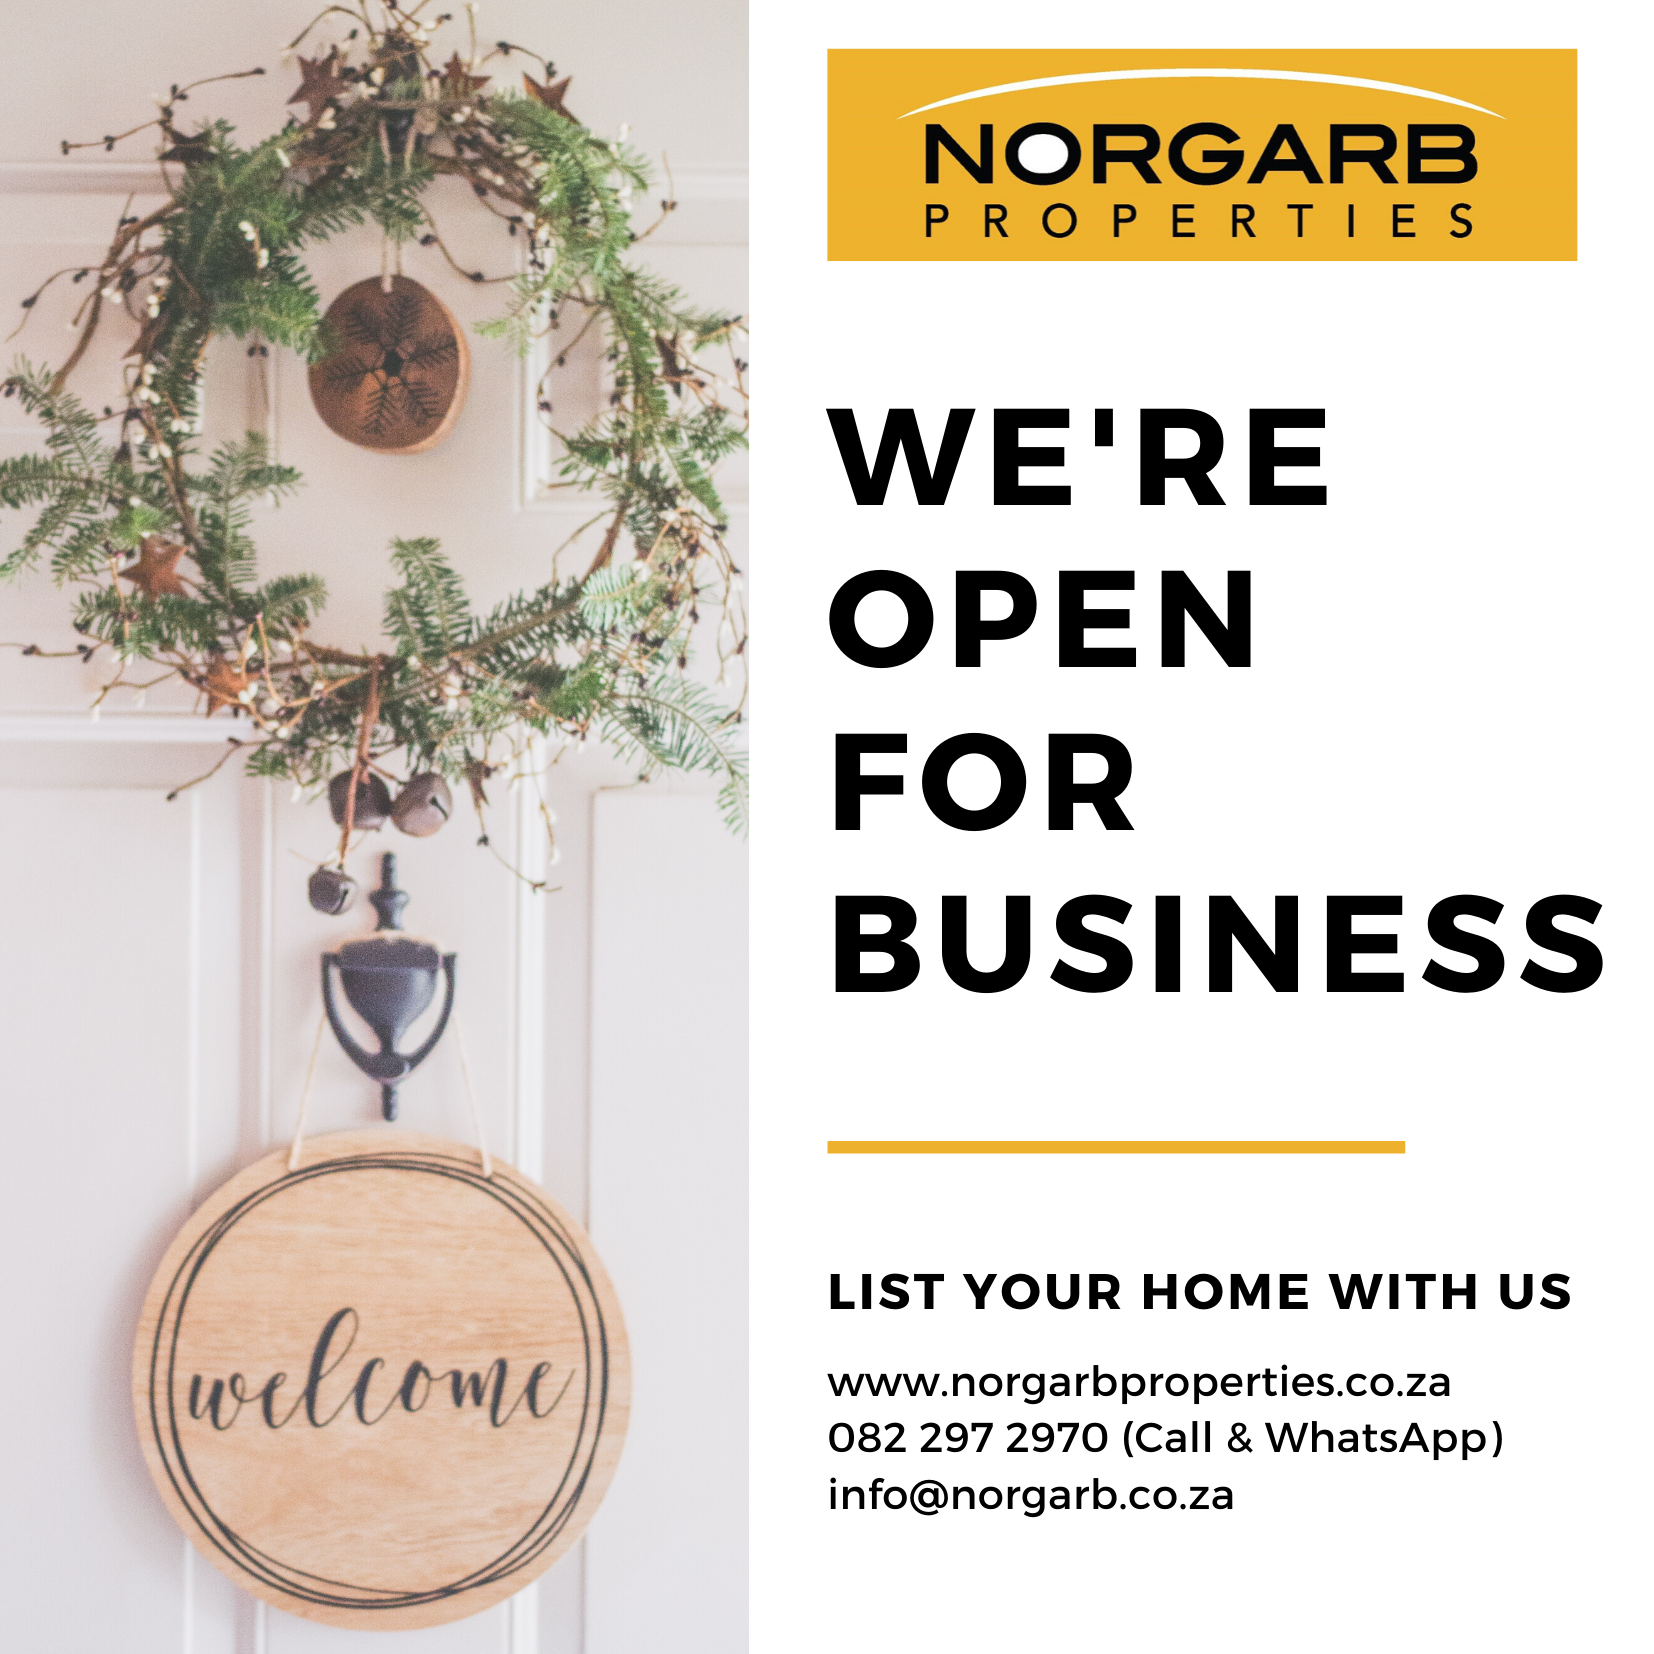 Despite the lock-down, we are very much open for business and ready to help you right away!